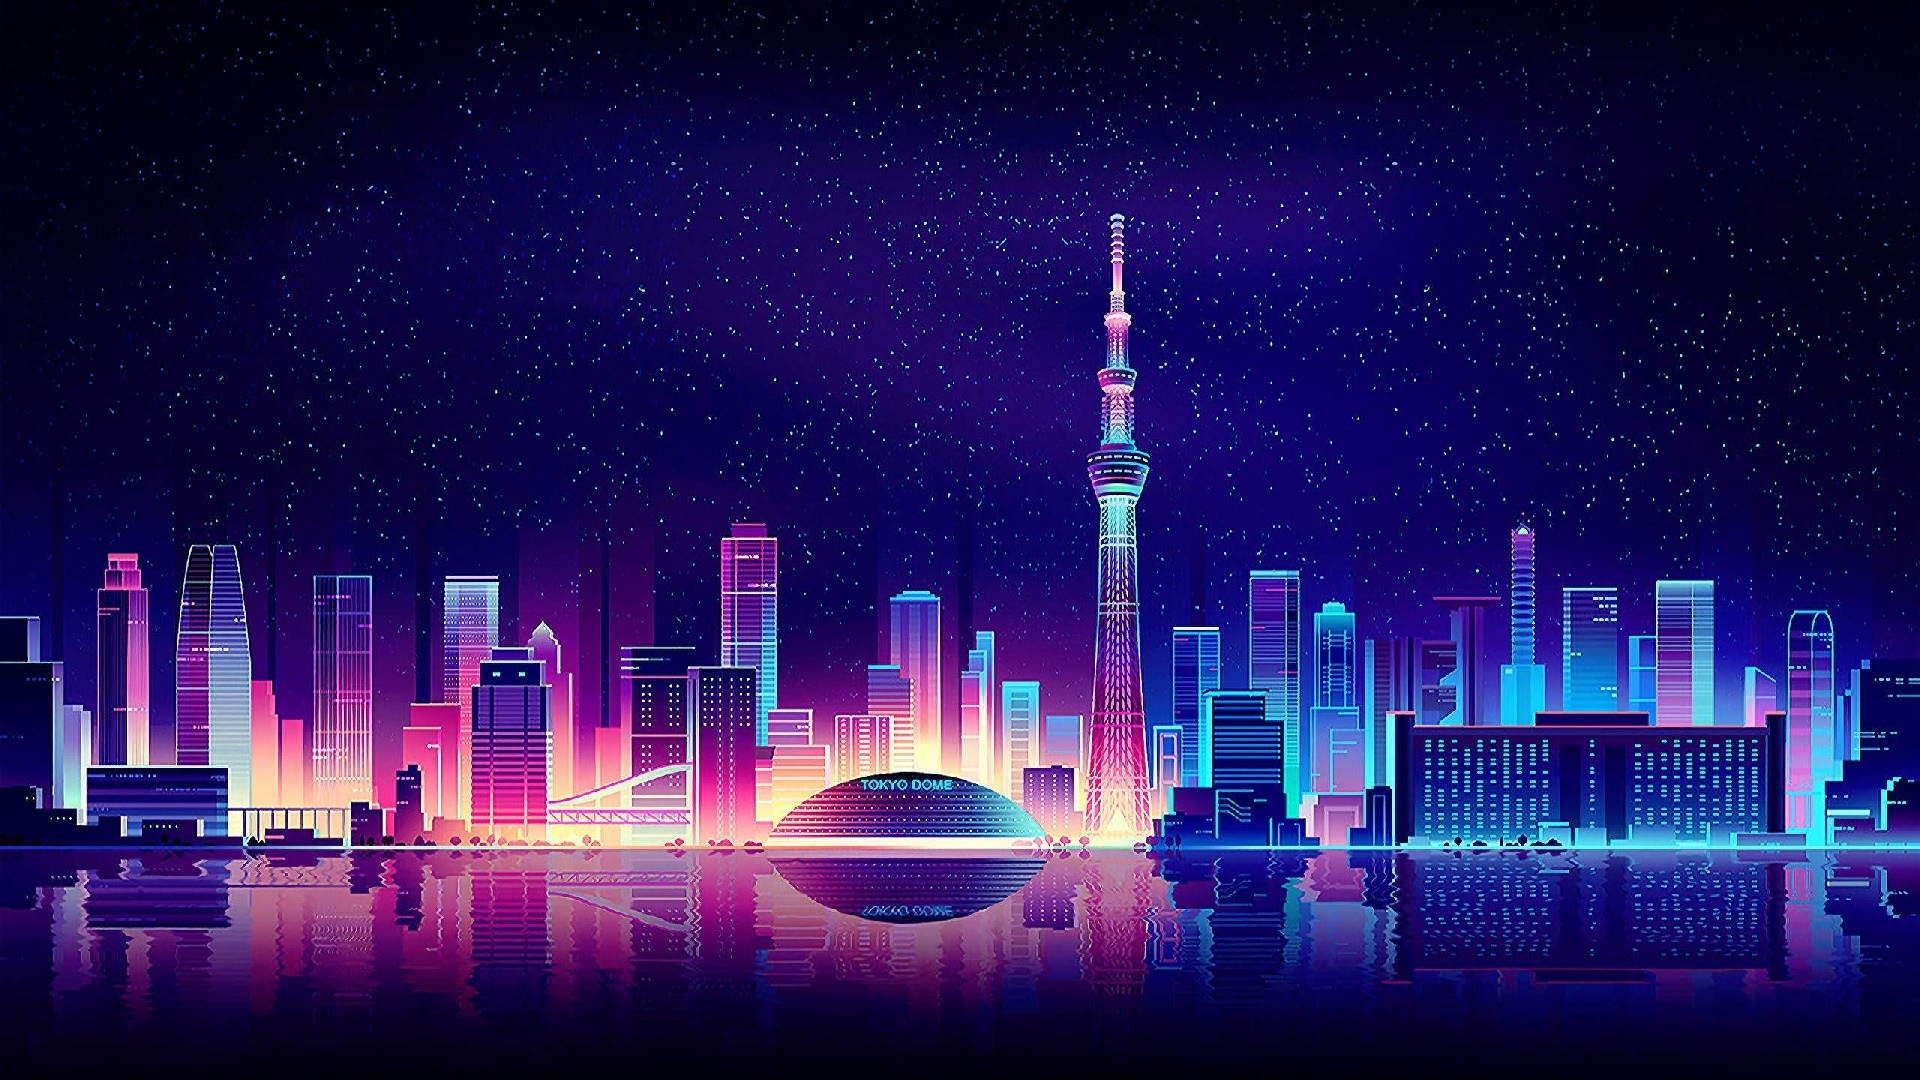 Starry Night Sky Above A Neon City HD Wallpaper - backiee - Free